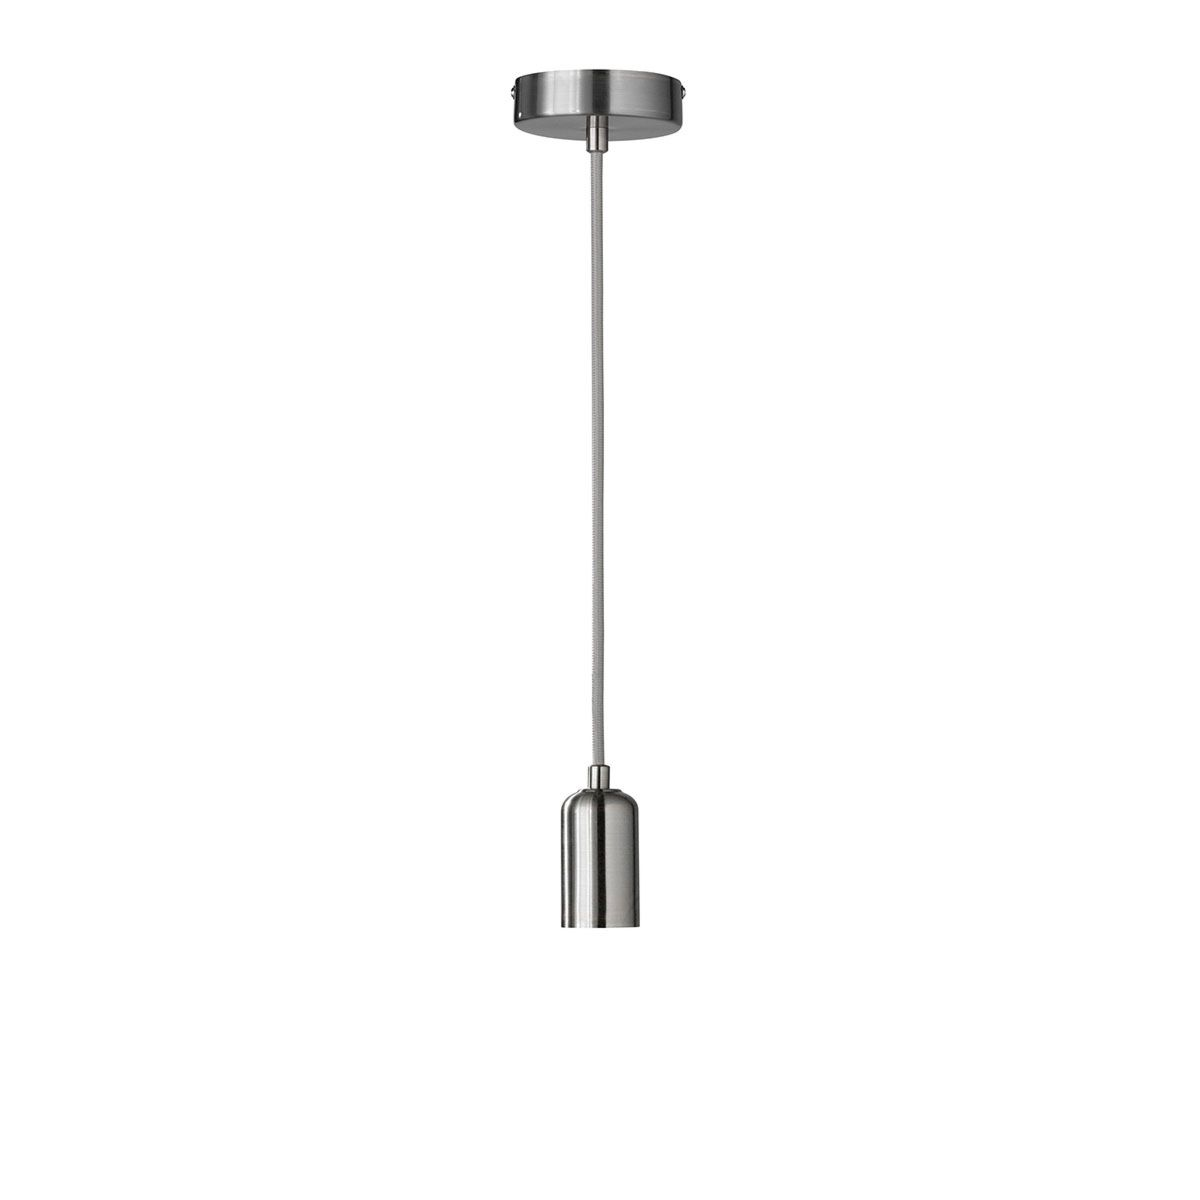 Wofi Dress Pendant Ceiling Light - Nickel Matt Finish